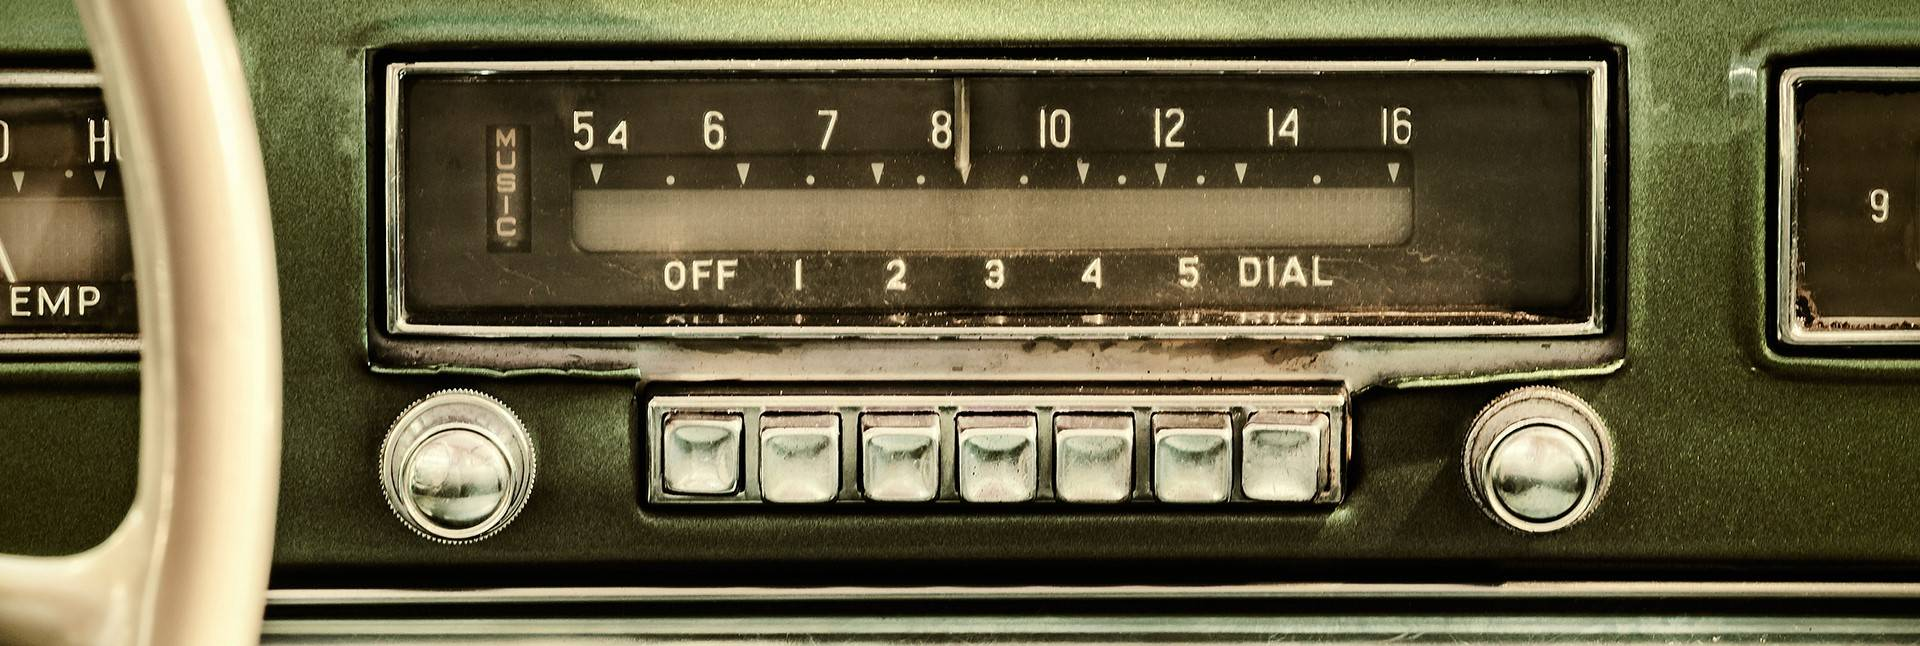 image of old car radio with push button station changer